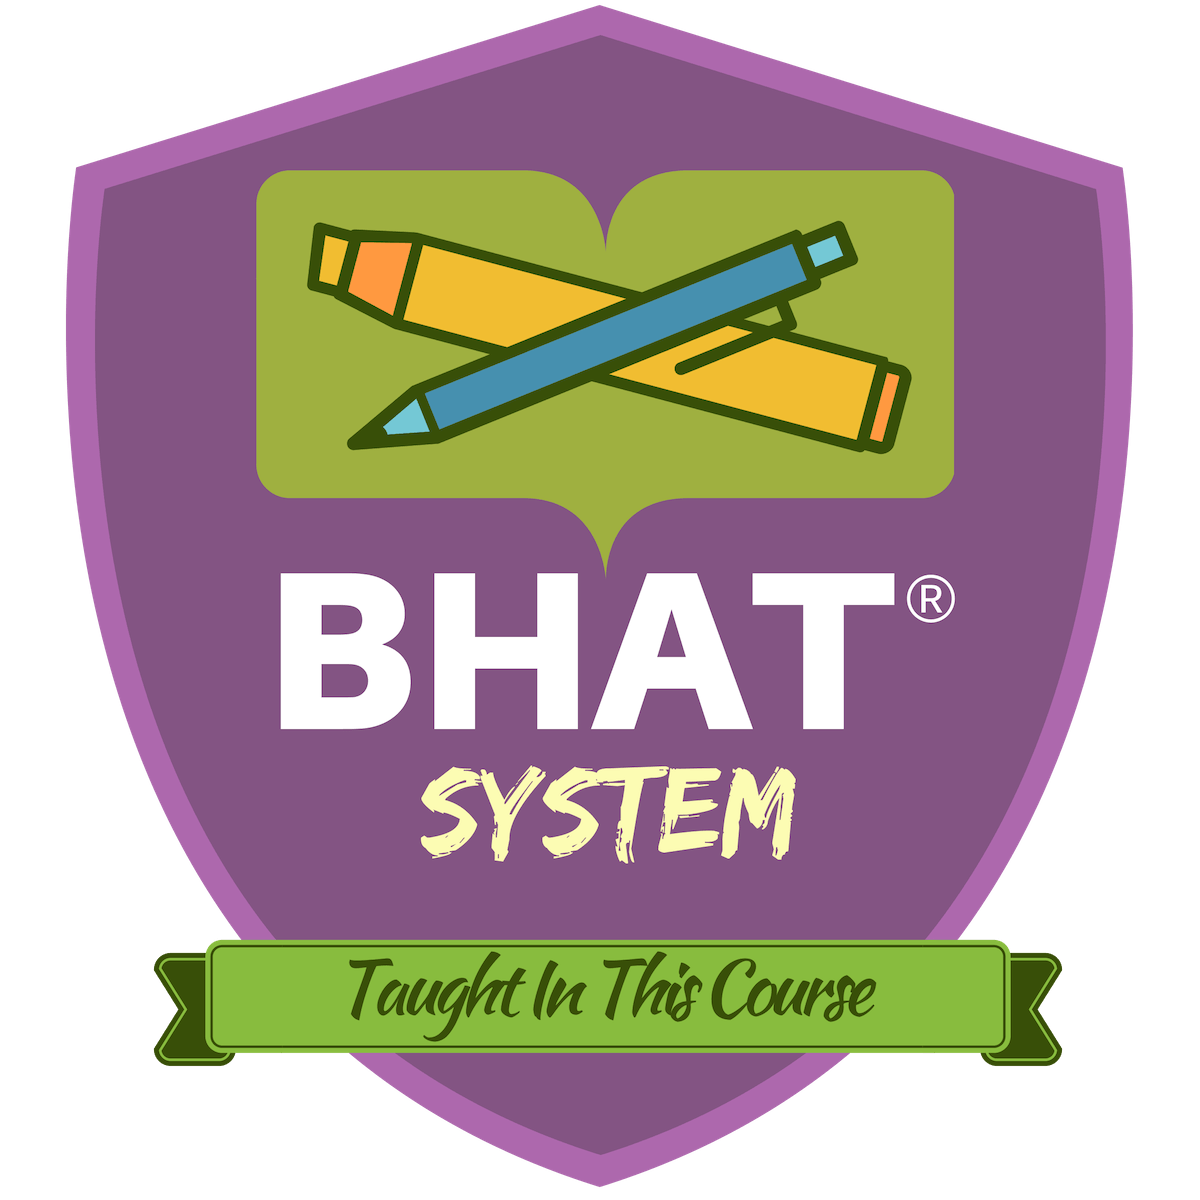 BHAT® System Included